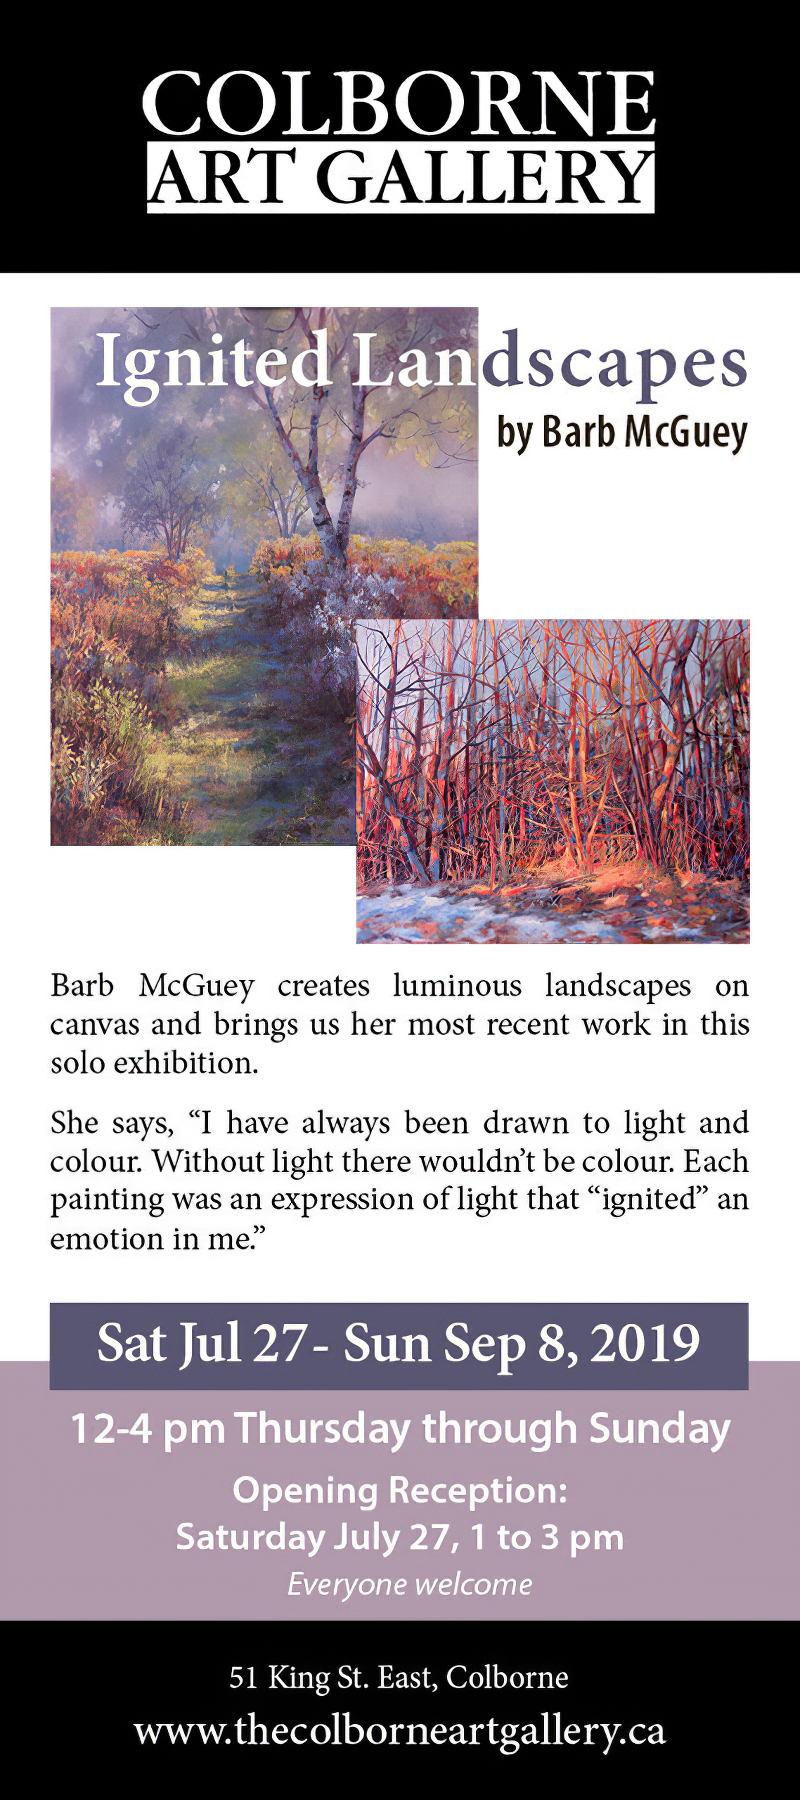 The Colborne Art Gallery presents Ignited Landscapes by Barb McGuey Sat Jul 27 - Sun Sep 8, 2019. Barb McGuey creates luminous landscapes on canvas and brings us her most recent work in this solo exhibition. She says, I have always been drawn to the light and colour. Without light there wouldn't be colour. Each painting was an expression of light that ignited an emotion in me.